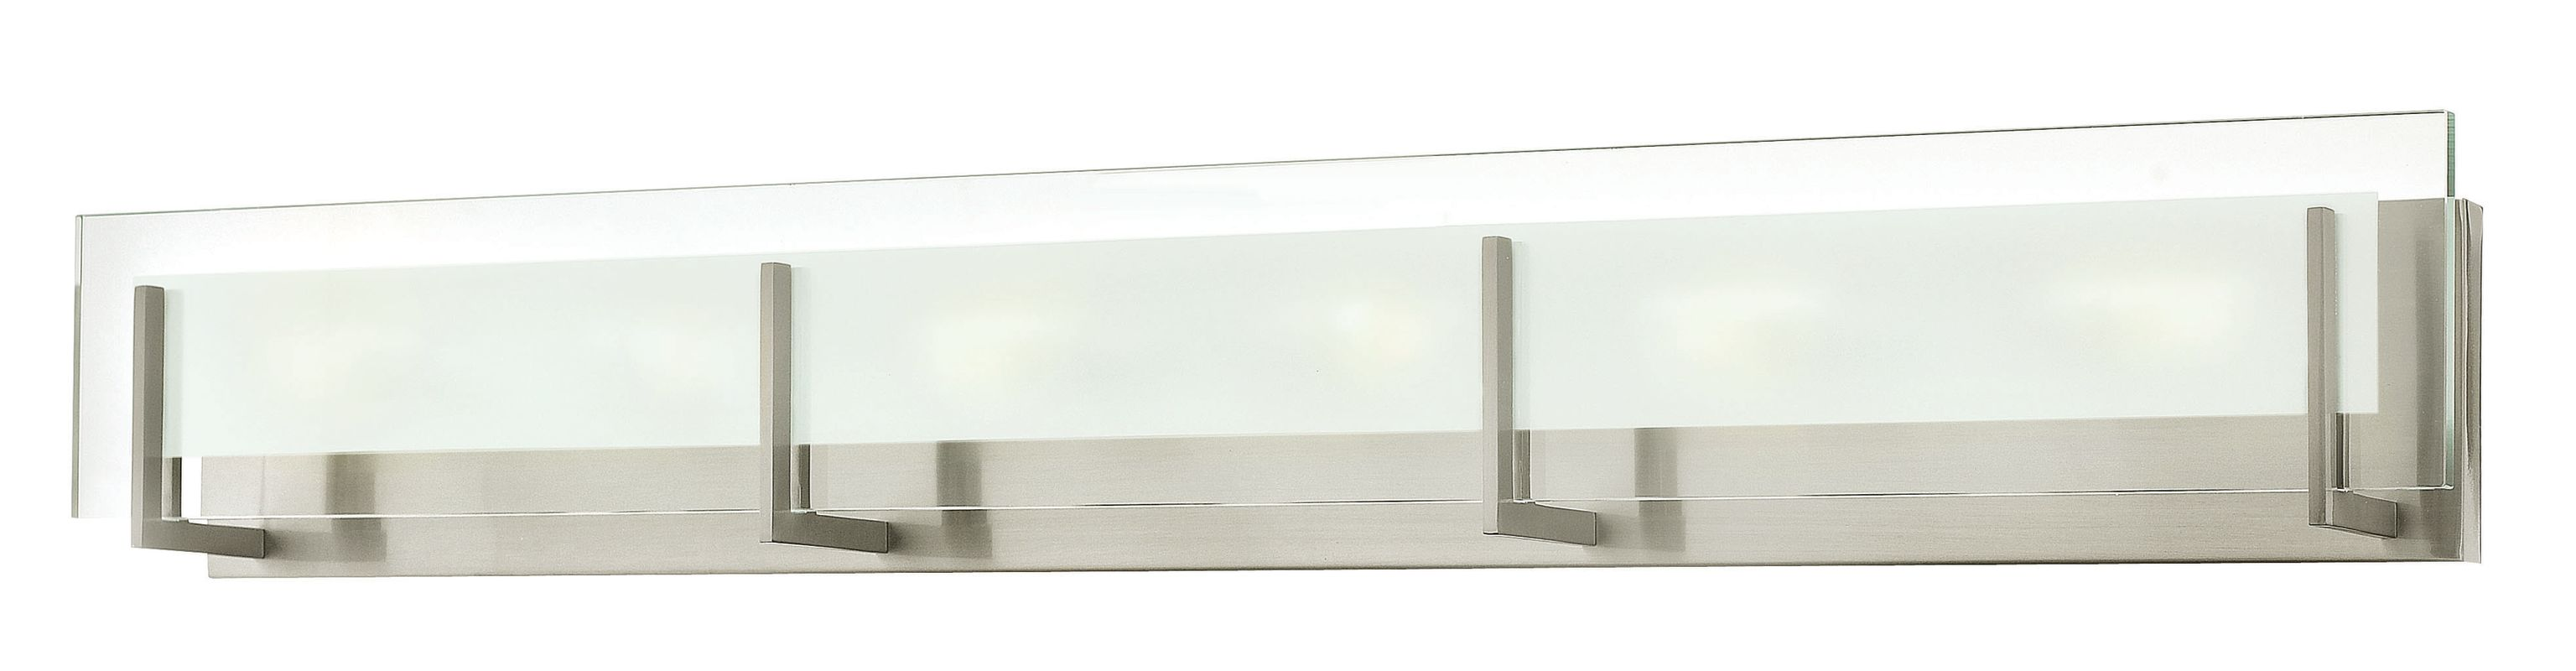 """Hinkley Lighting 5656-LED 6 Light ADA Compliant LED Bath Bar from the Sale $679.00 ITEM#: 2635597 MODEL# :5656BN-LED2 UPC#: 640665565652 Six Light ADA Compliant LED Bath Bar from the Latitude Collection Features: Clear Beveled Inside-Etched glass rectangle shade Etched glass shades offer creative patterns and designs Made of steel Designed to cast a soft ambient light over a wide area Can be mounted facing upwards only Energy efficient ADA Compliant Suitable for damp locations Lamping Technology: LED - Light Emitting Diode: Highly efficient diodes produce little heat and have an extremely long lifespan. Specifications: Backplate Height: 4.75"""" Backplate Width: 36.25"""" Bulb Included: Yes Bulb Type: LED Extension: 4"""" (measured from mounting surface to furthest protruding point on fixture) Full Backplate: Yes HCO: 3.25"""" (height from center of outlet) Height: 5.75"""" LED: Yes Material: Steel Number of Bulbs: 6 Product Weight: 14 lbs Shade Height: 4.75"""" Shade Width: 18"""" Sloped Ceiling Compatible: No Title 24: No UL Rating: Damp Location Voltage: 120v Wattage: 39.6 Watts Per Bulb: 6.6 Compliance: UL Listed - Indicates whether a product meets standards and compliance guidelines set by Underwriters Laboratories. This listing determines what types of rooms or environments a product can be used in safely. ADA Compliance - The Americans with Disabilities Act (ADA). Fixtures hung between 27"""" and 80"""" above the floor must have an extension of 4"""" or less; this applies to wall lights hung in walkways, halls, corridors, passageways or aisles. Ceiling Fixtures must be hung no lower than 80"""". About Hinkley Lighting: Since 1922, Hinkley Lighting has been driven by a passion to blend design and function in creating quality products that enhance your life. Hinkley is continually recommended by interior and exterior designers, and is available to you through premier lighting showrooms across the country. They pride themselves in delivering superior customer service that is second to none. The"""